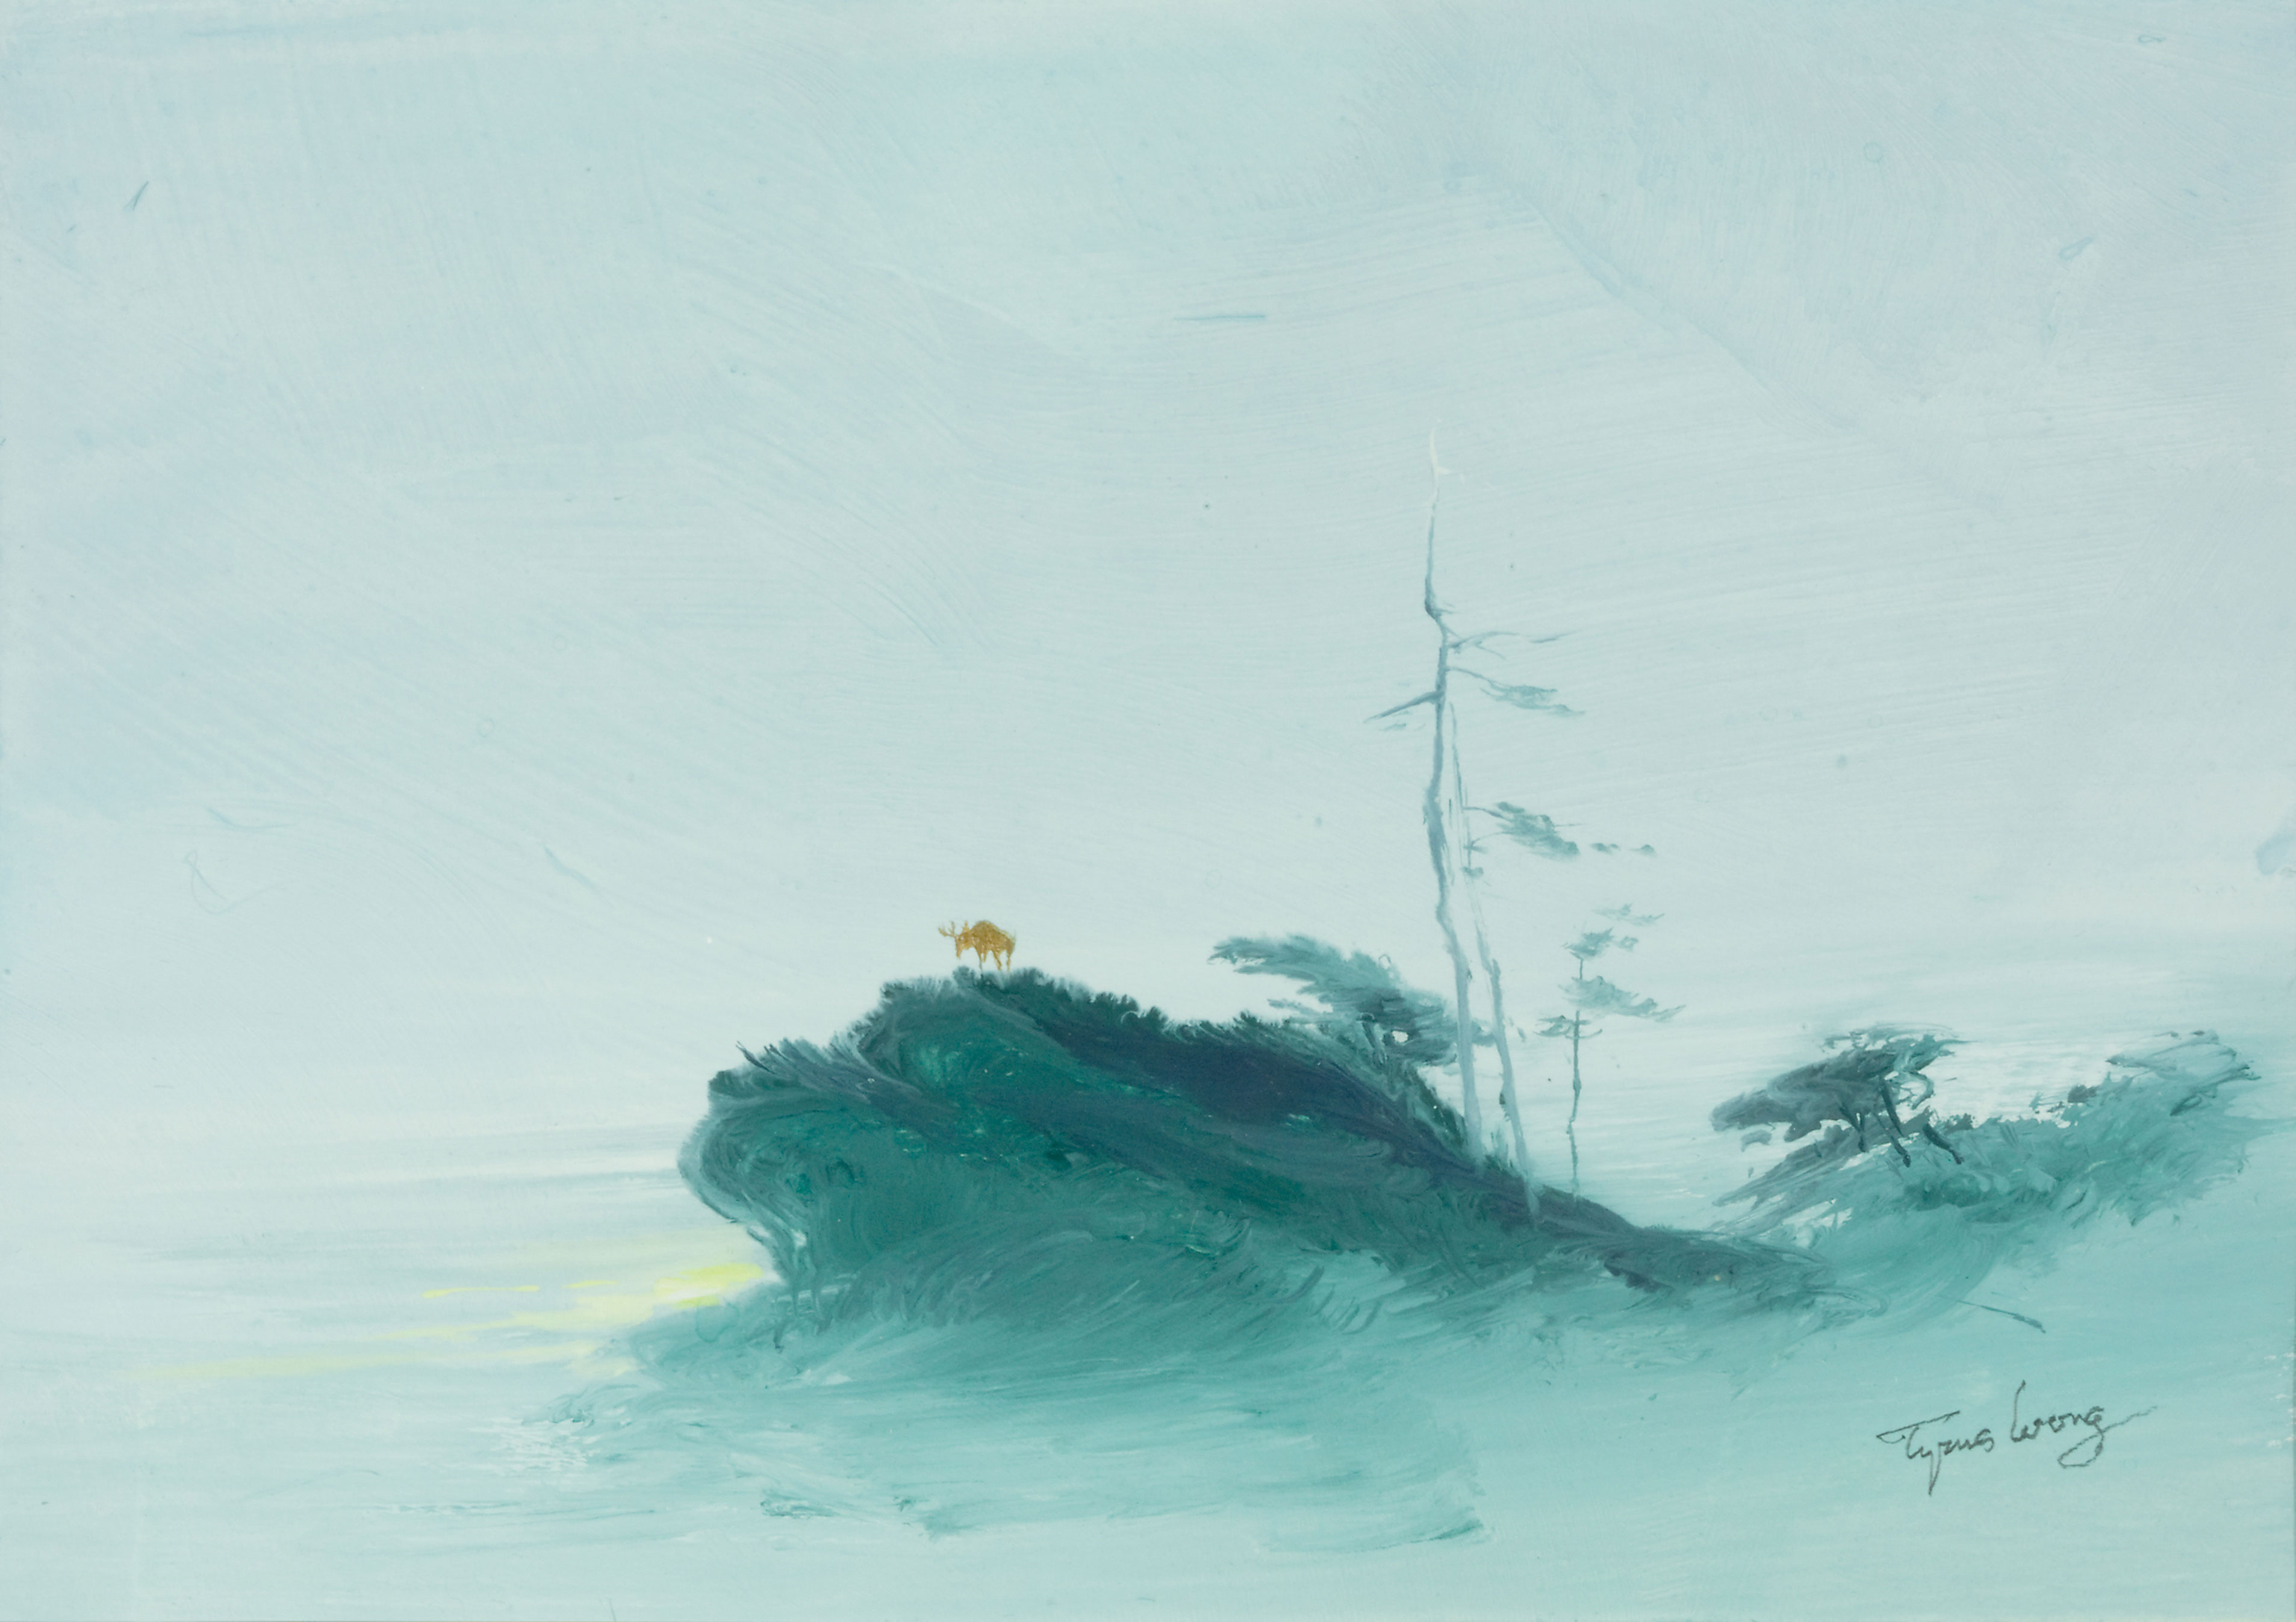 Deer on Cliff, by Tyrus Wong, 1960s